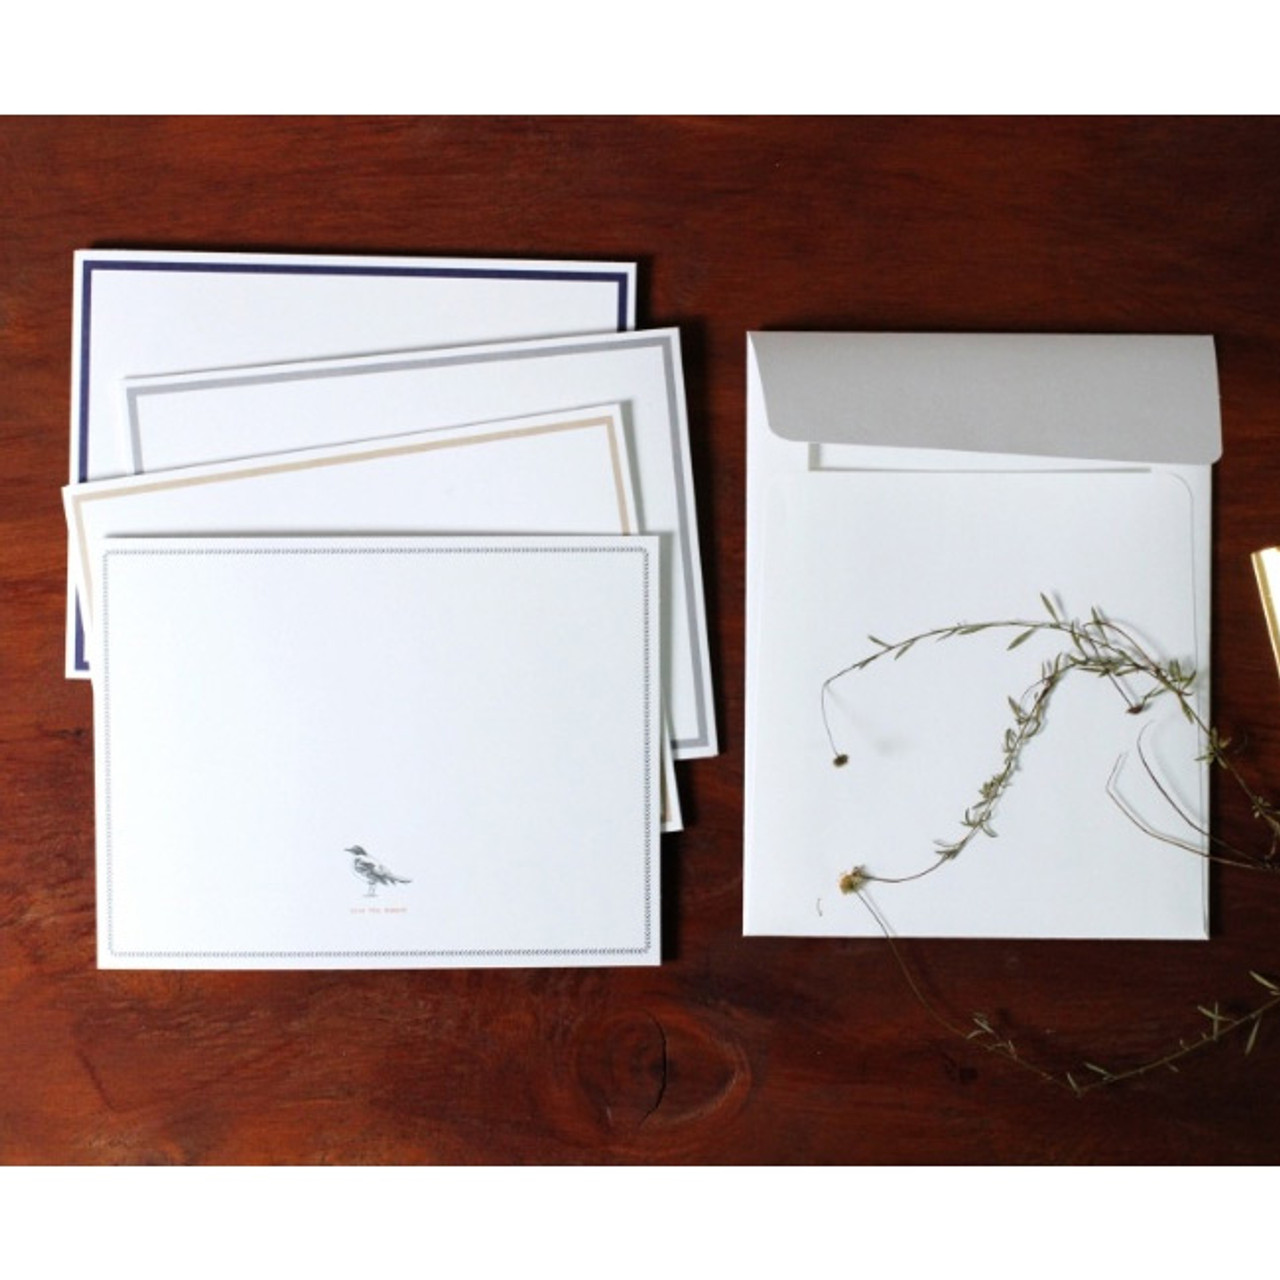 Moods views 4X6 photo frame card and envelope - fallindesign